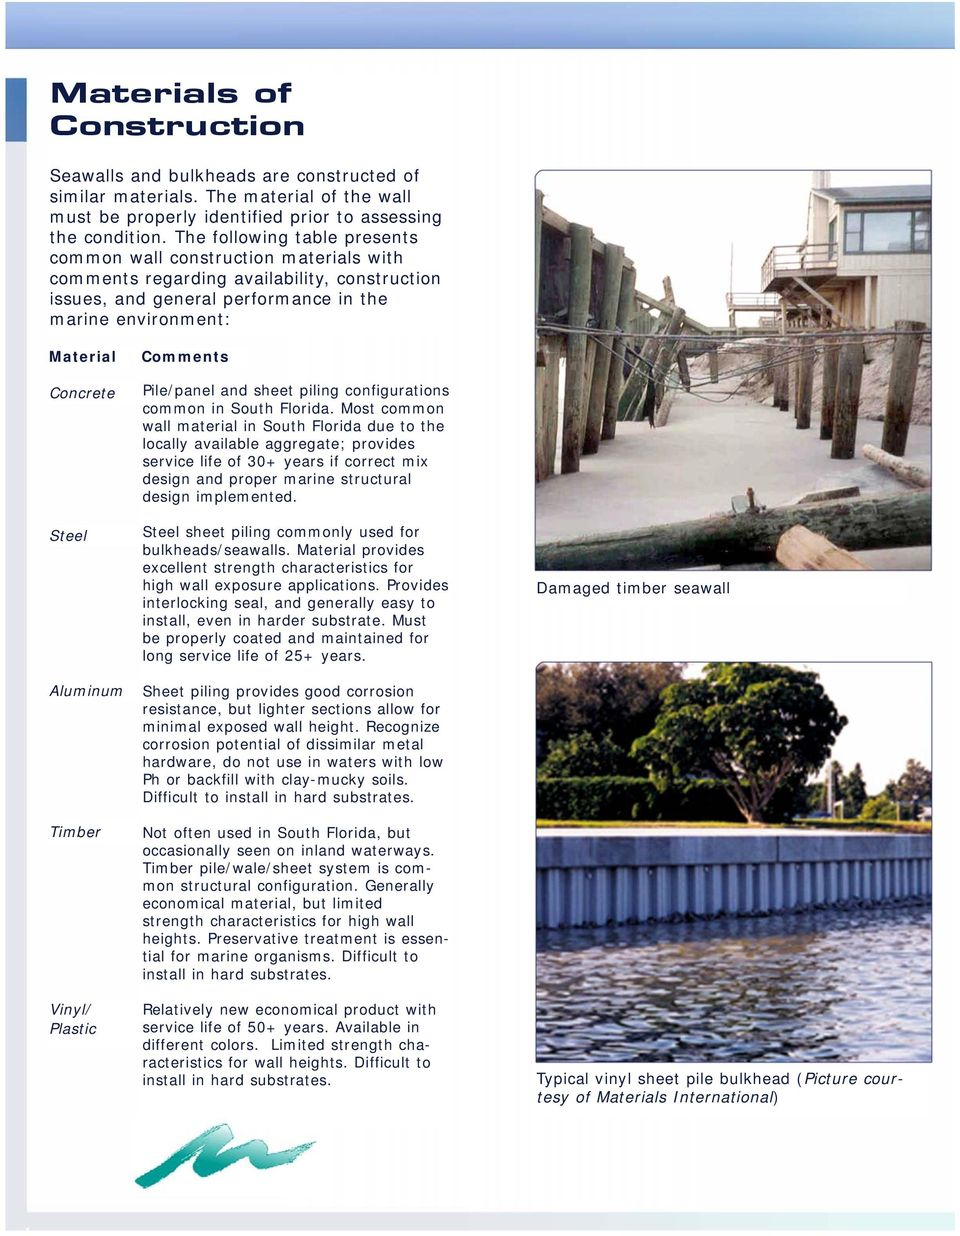 Evaluating the Condition of Seawalls/Bulkheads - PDF